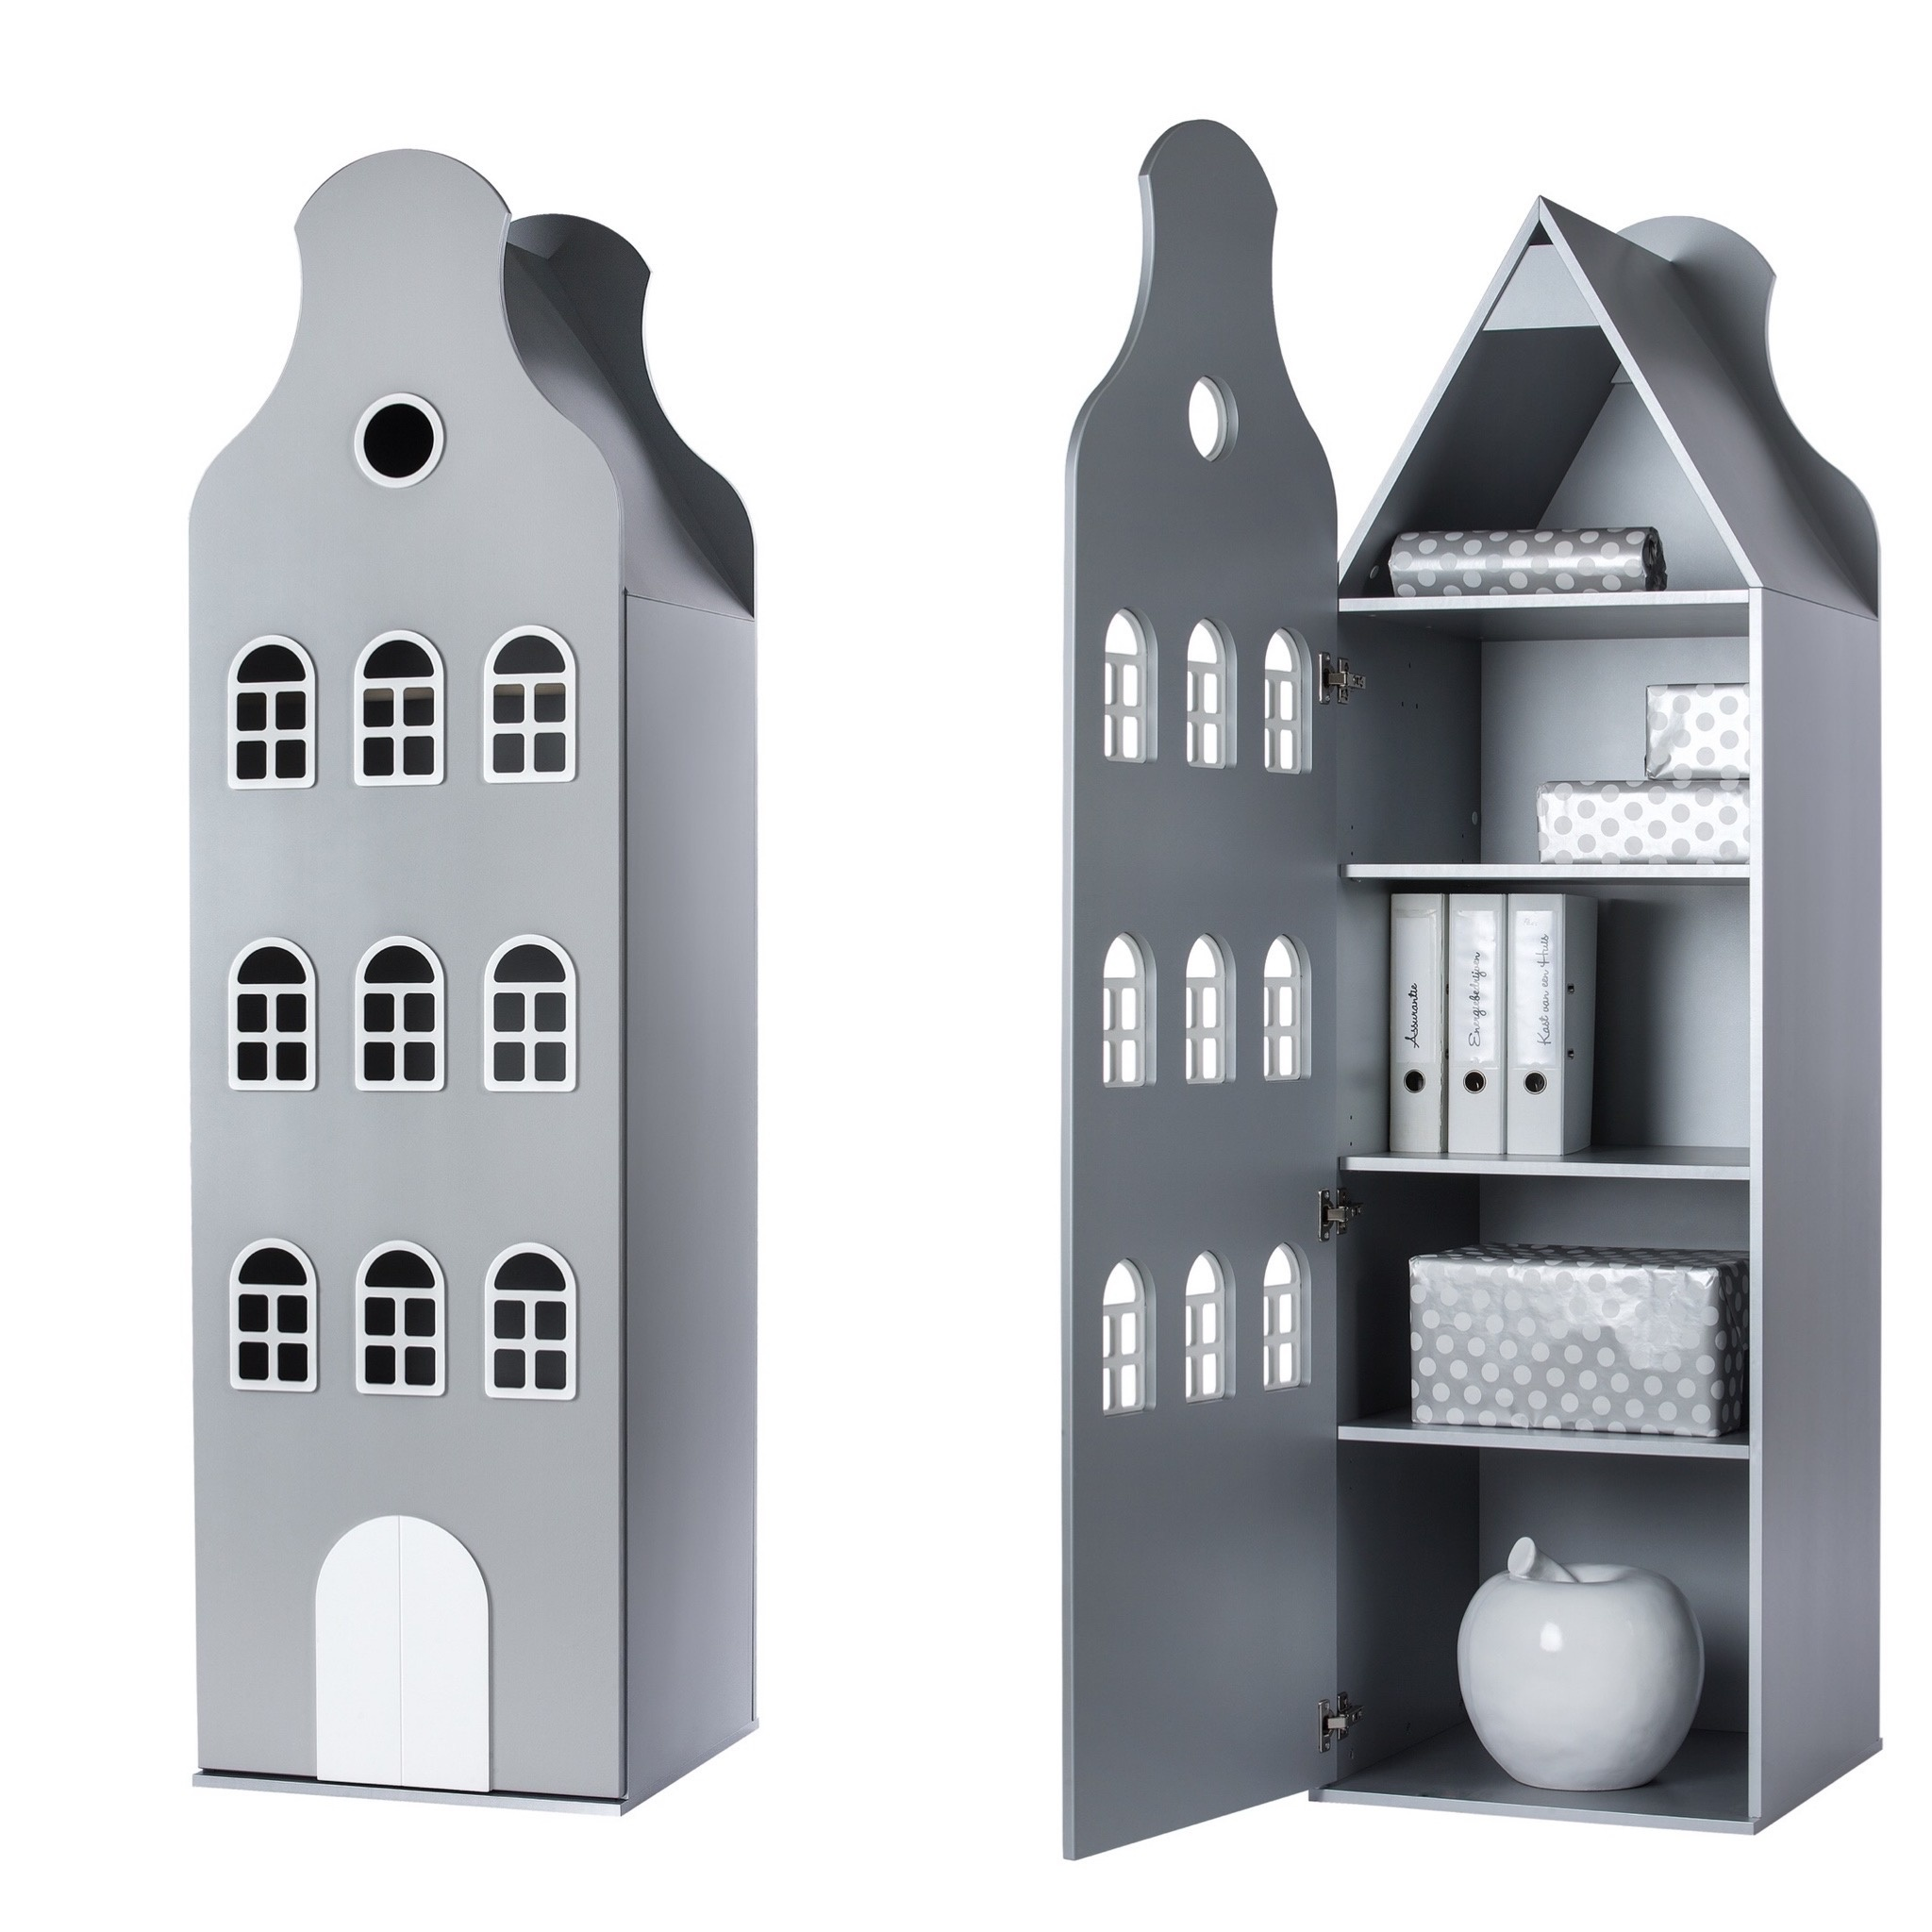 Cabinet Amsterdam Bellgable, XL 216/60/60 cm. All colors.-7